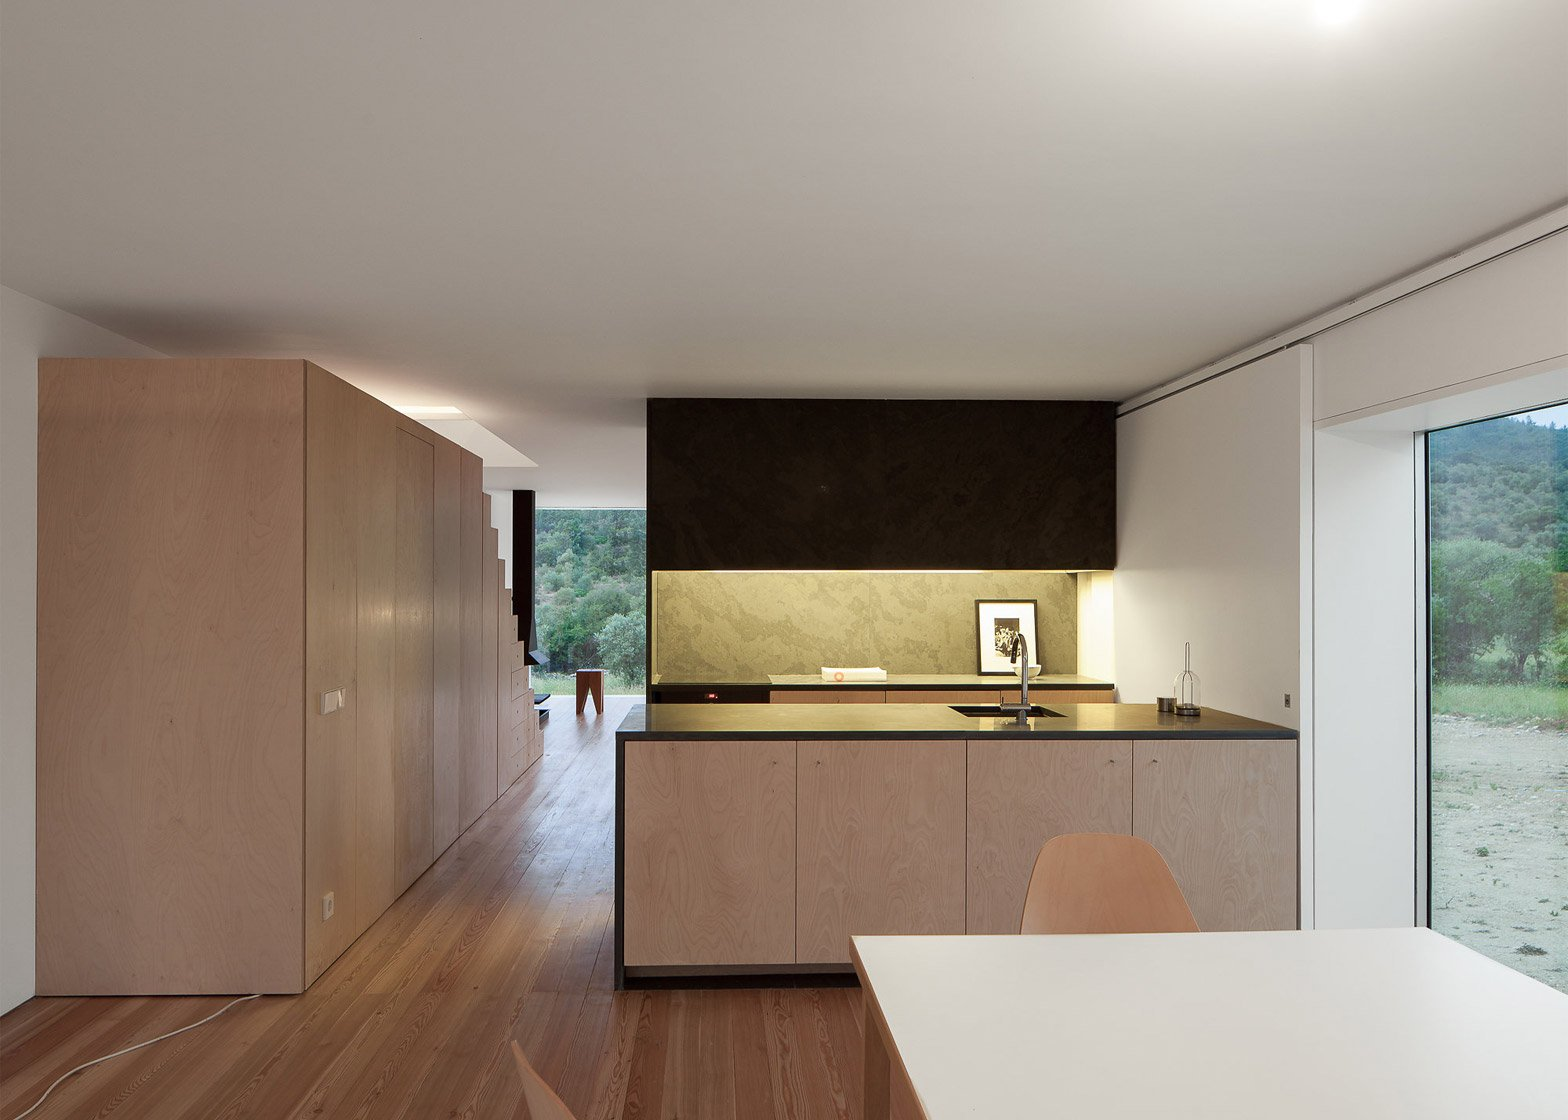 House in Fonte Boa by Joao Mendes Ribeiro